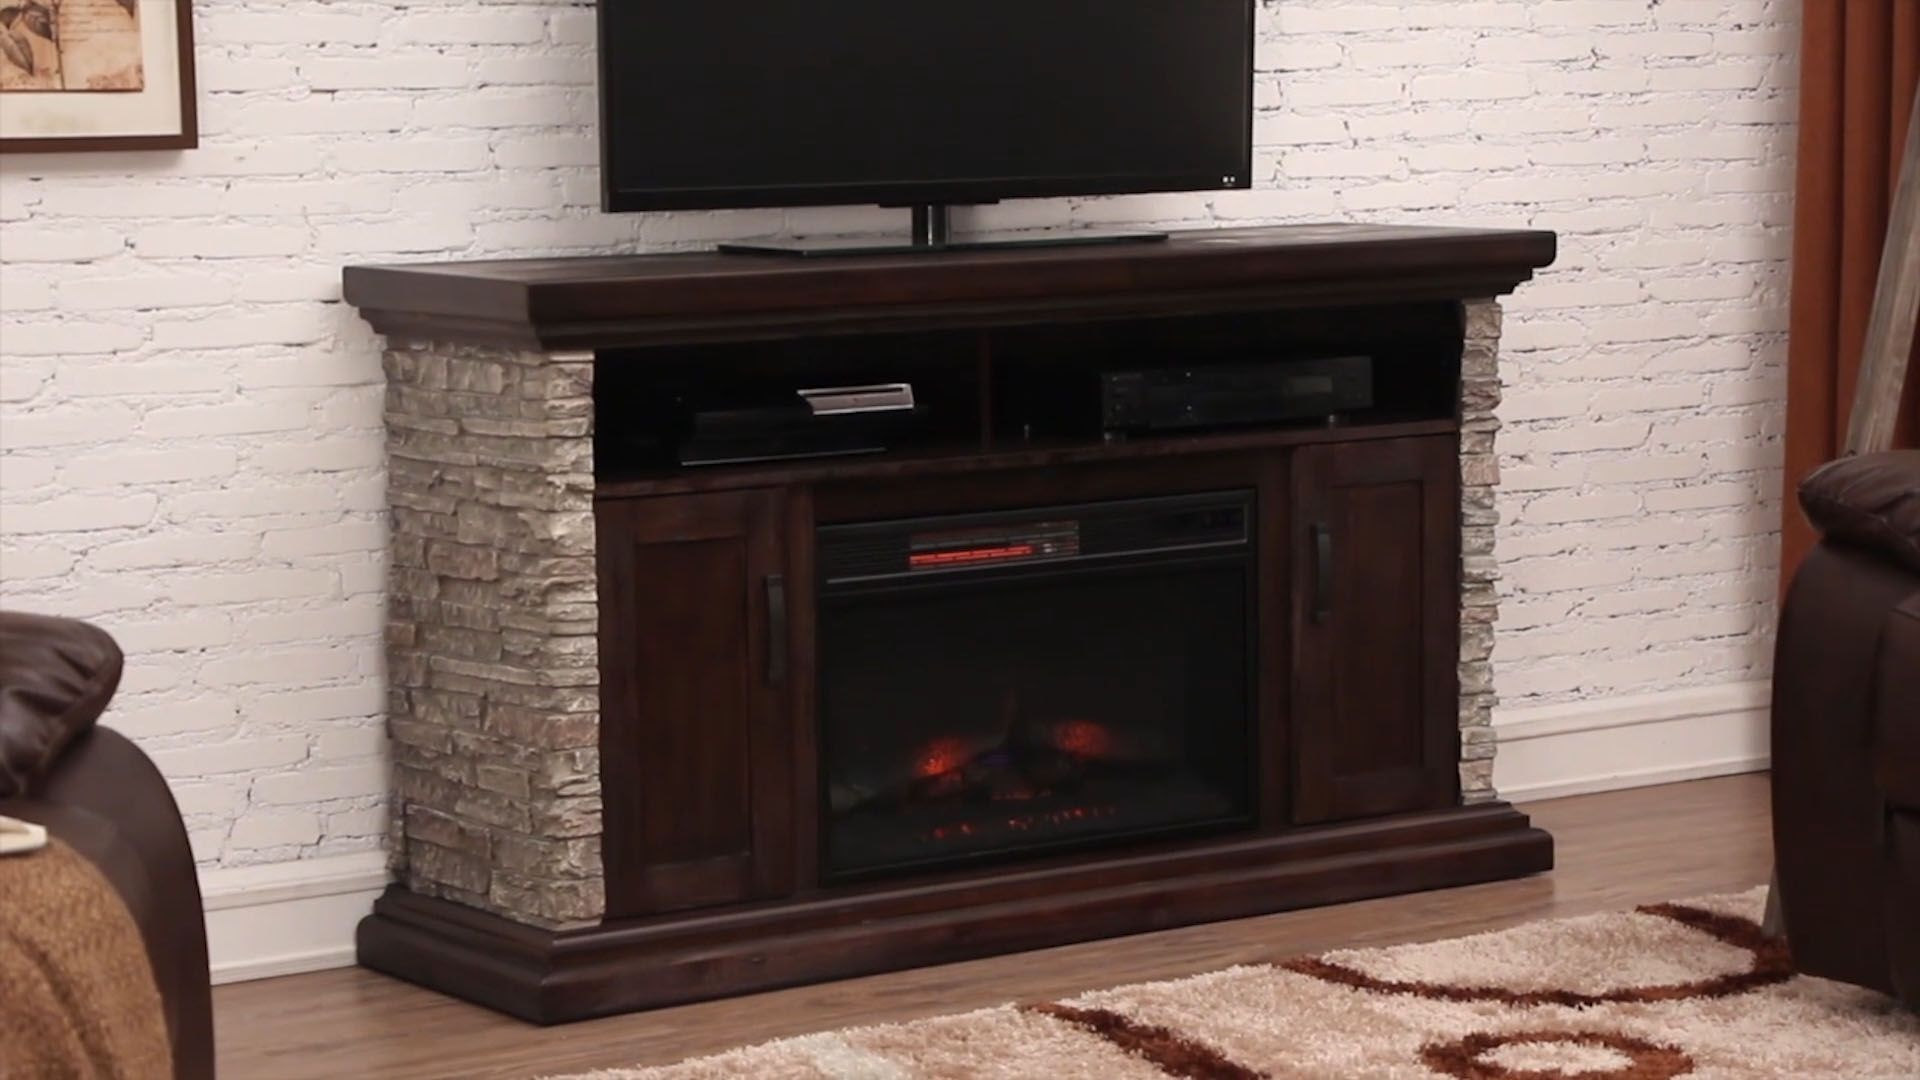 15 Menards Electric Fireplace Tv Stand Selection Fireplace Tv Stand Electric Fireplace Tv Stand Electric Fireplace